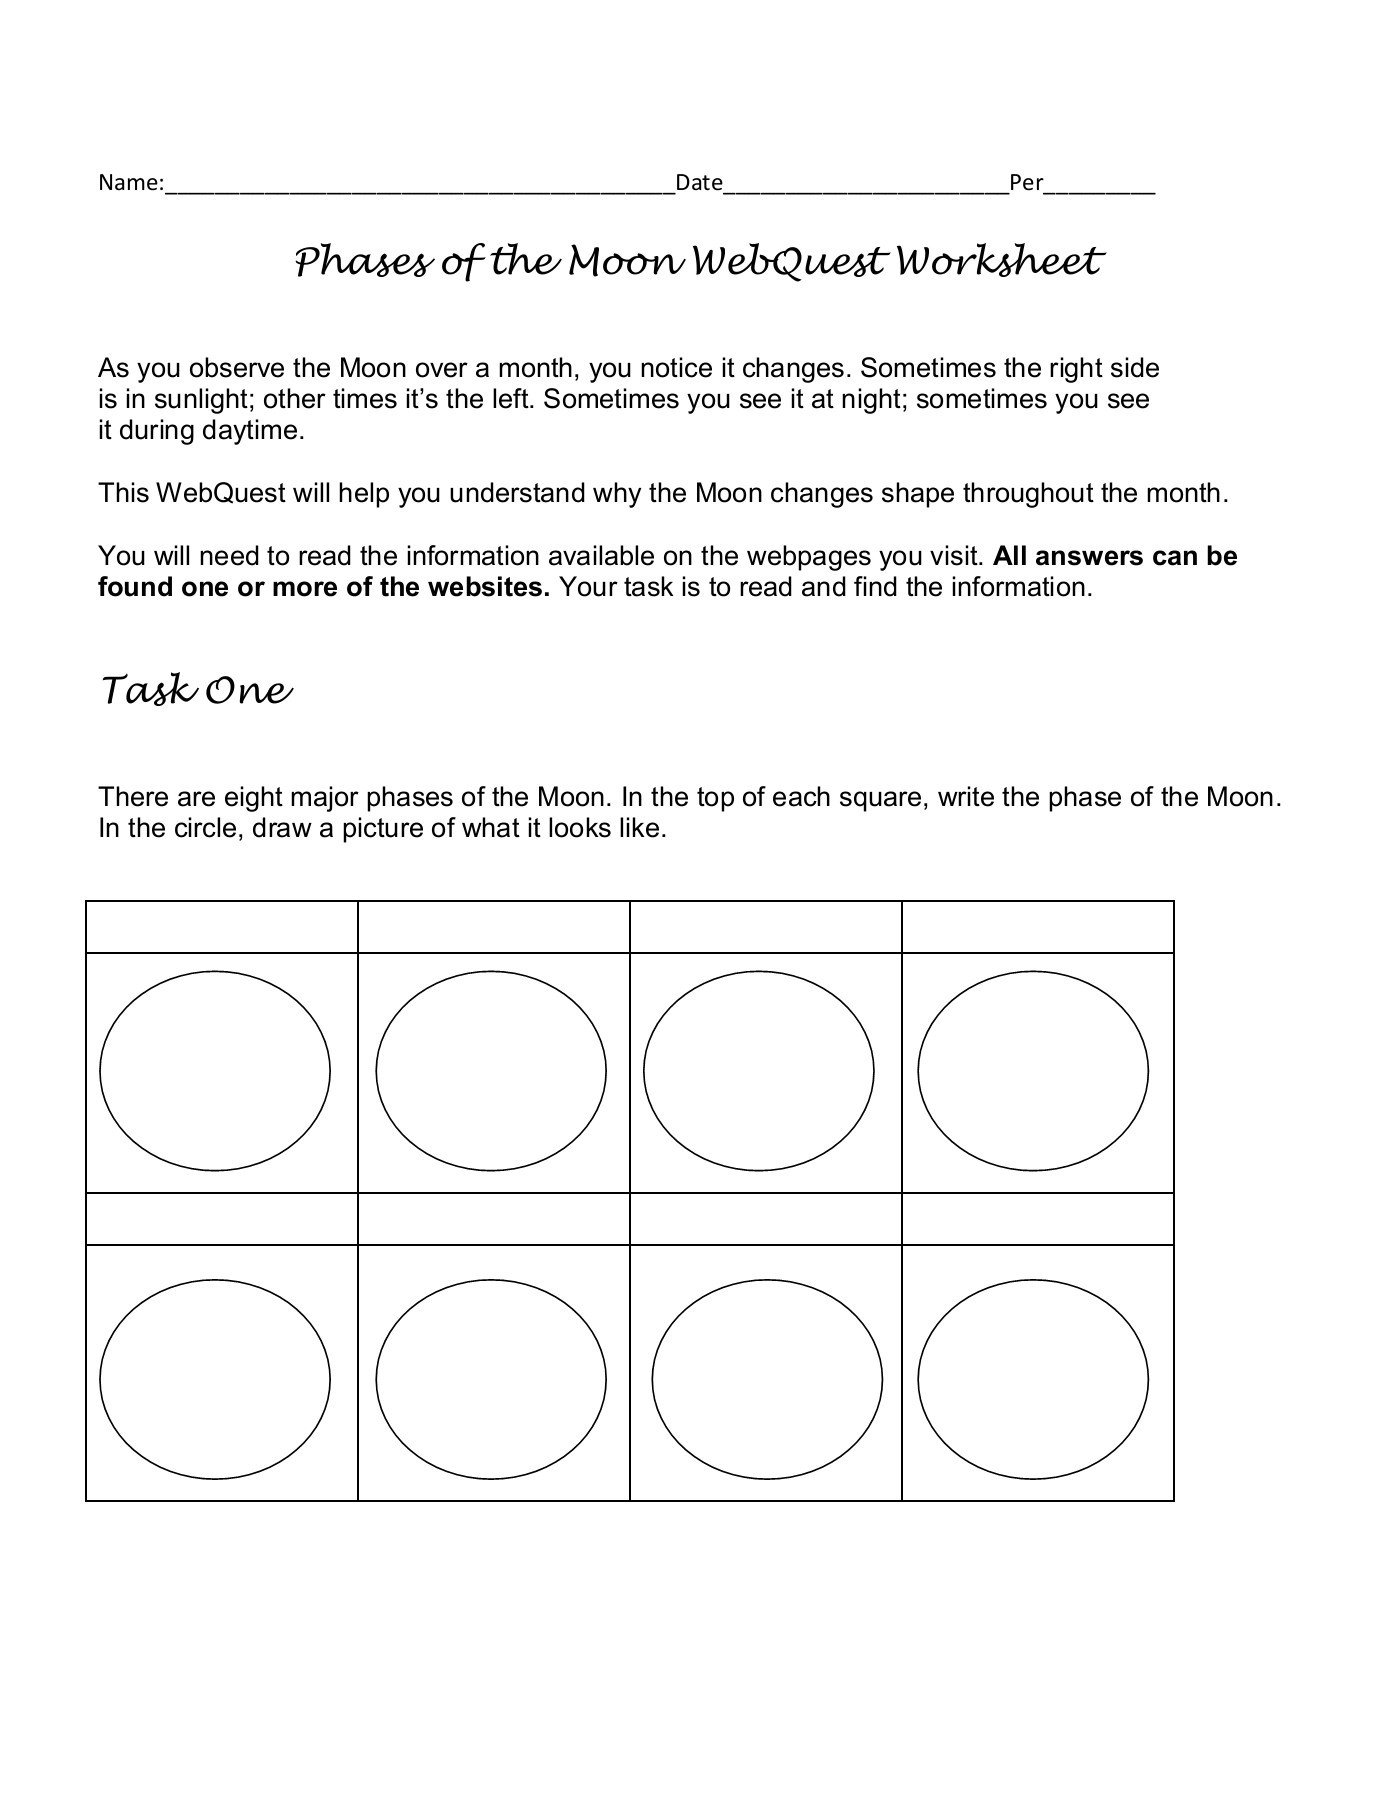 Phases Of the Moon Worksheet Phases Of the Moon Webquest Worksheet Cusd80 Pages 1